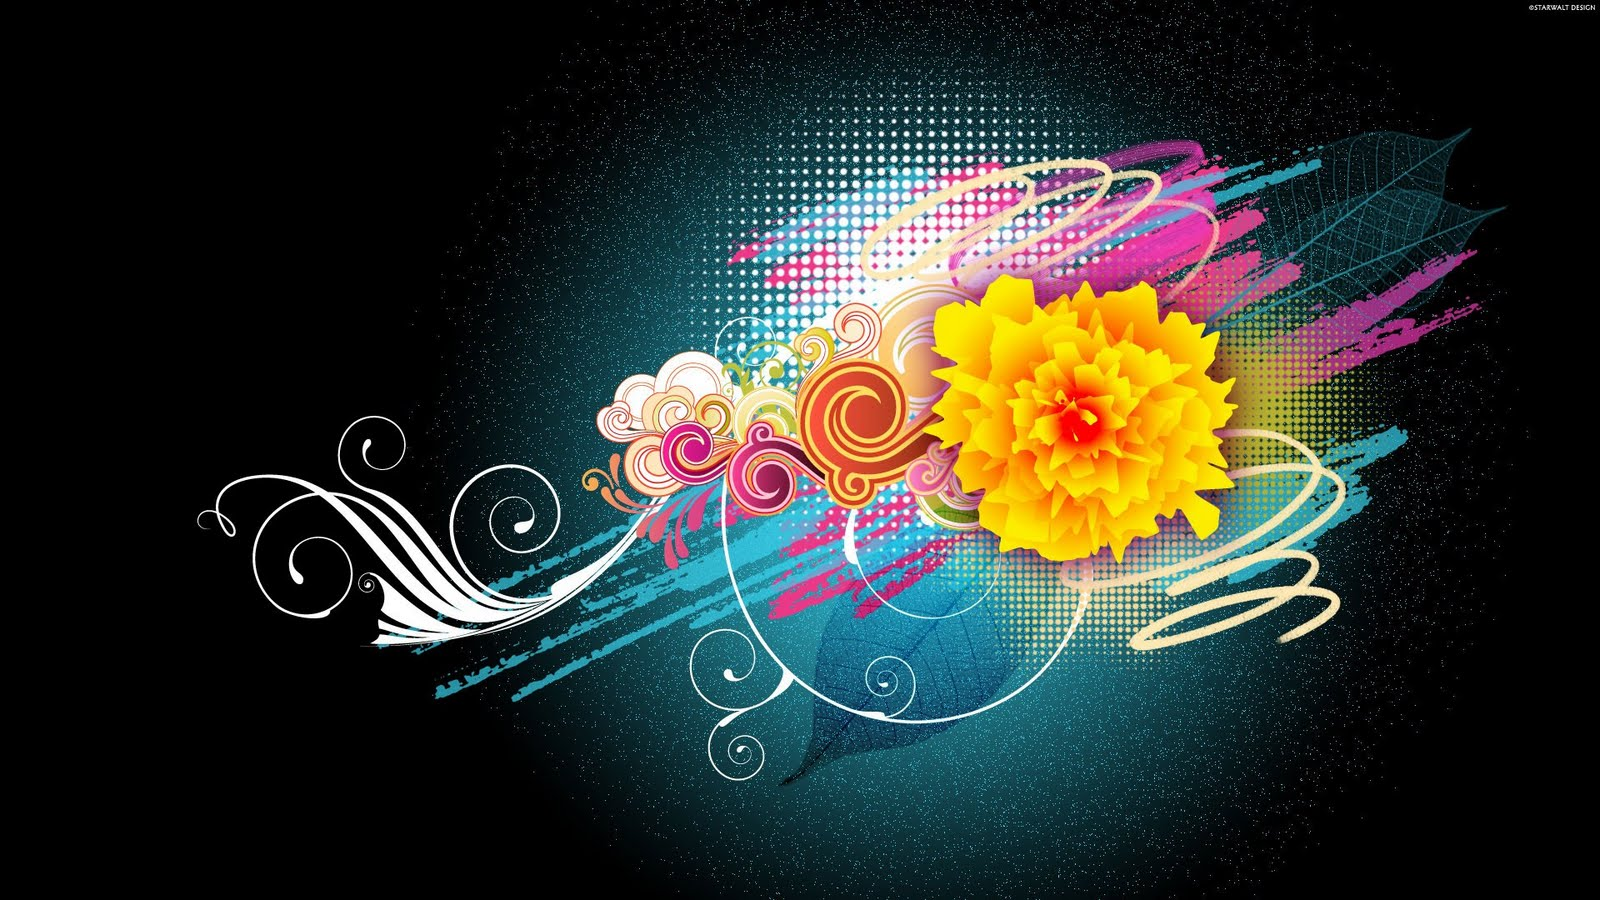 http://2.bp.blogspot.com/-D1BYTby_bLc/To5CpIDVO6I/AAAAAAAABKw/LYJh-t51wSY/s1600/Vector-1080p-Wallpapers-4.jpg